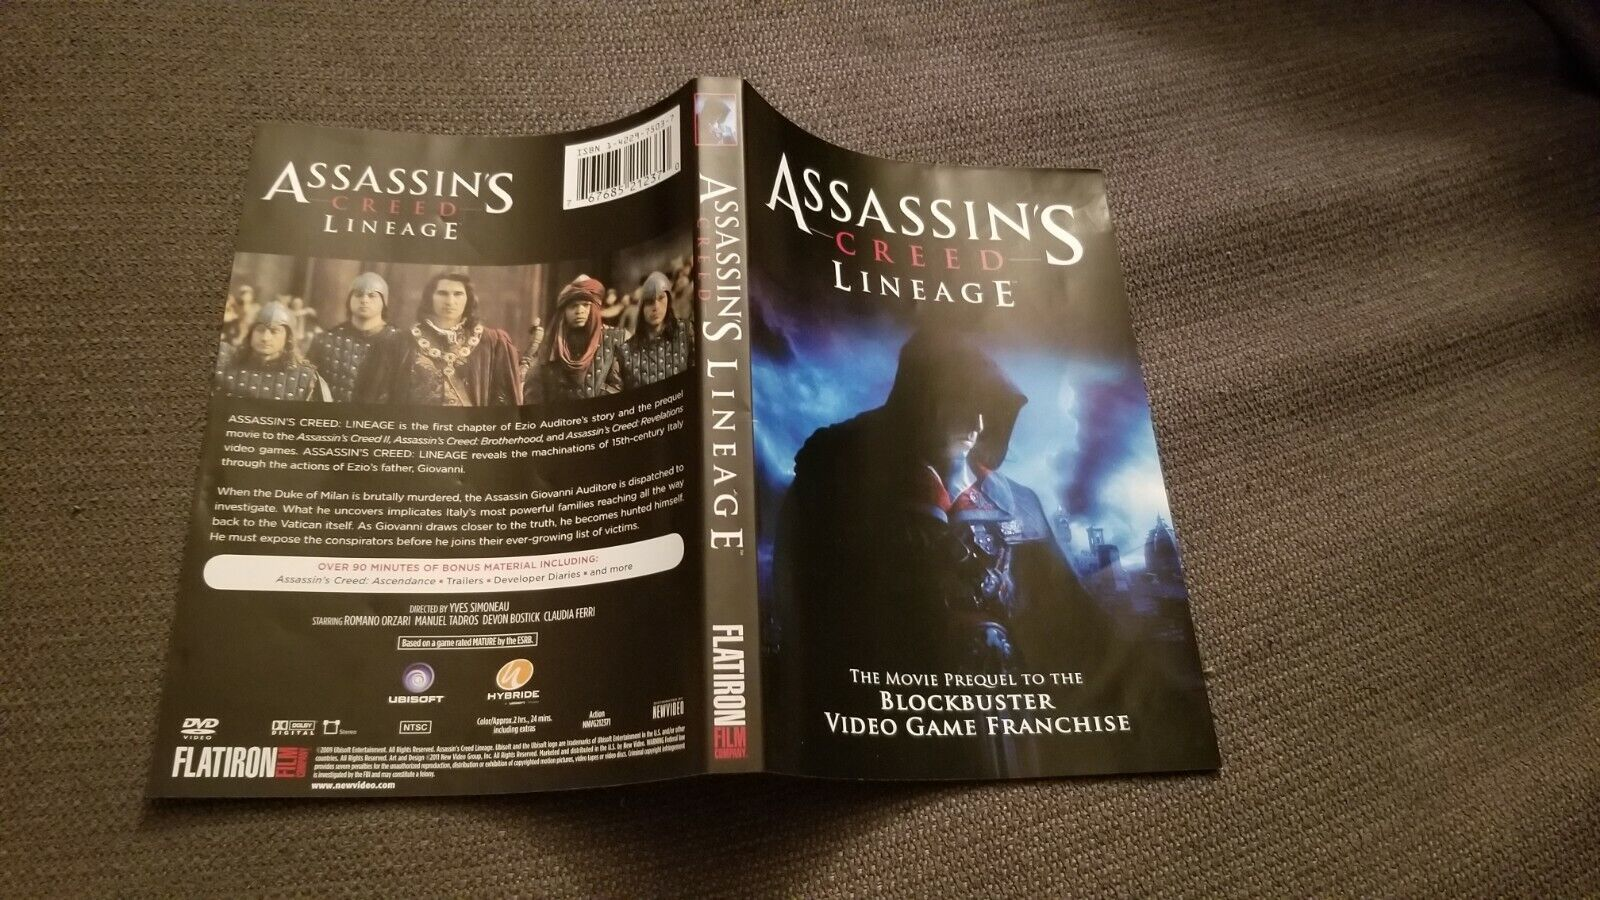 Assassins Creed Lineage Dvd 2011 For Sale Online Ebay